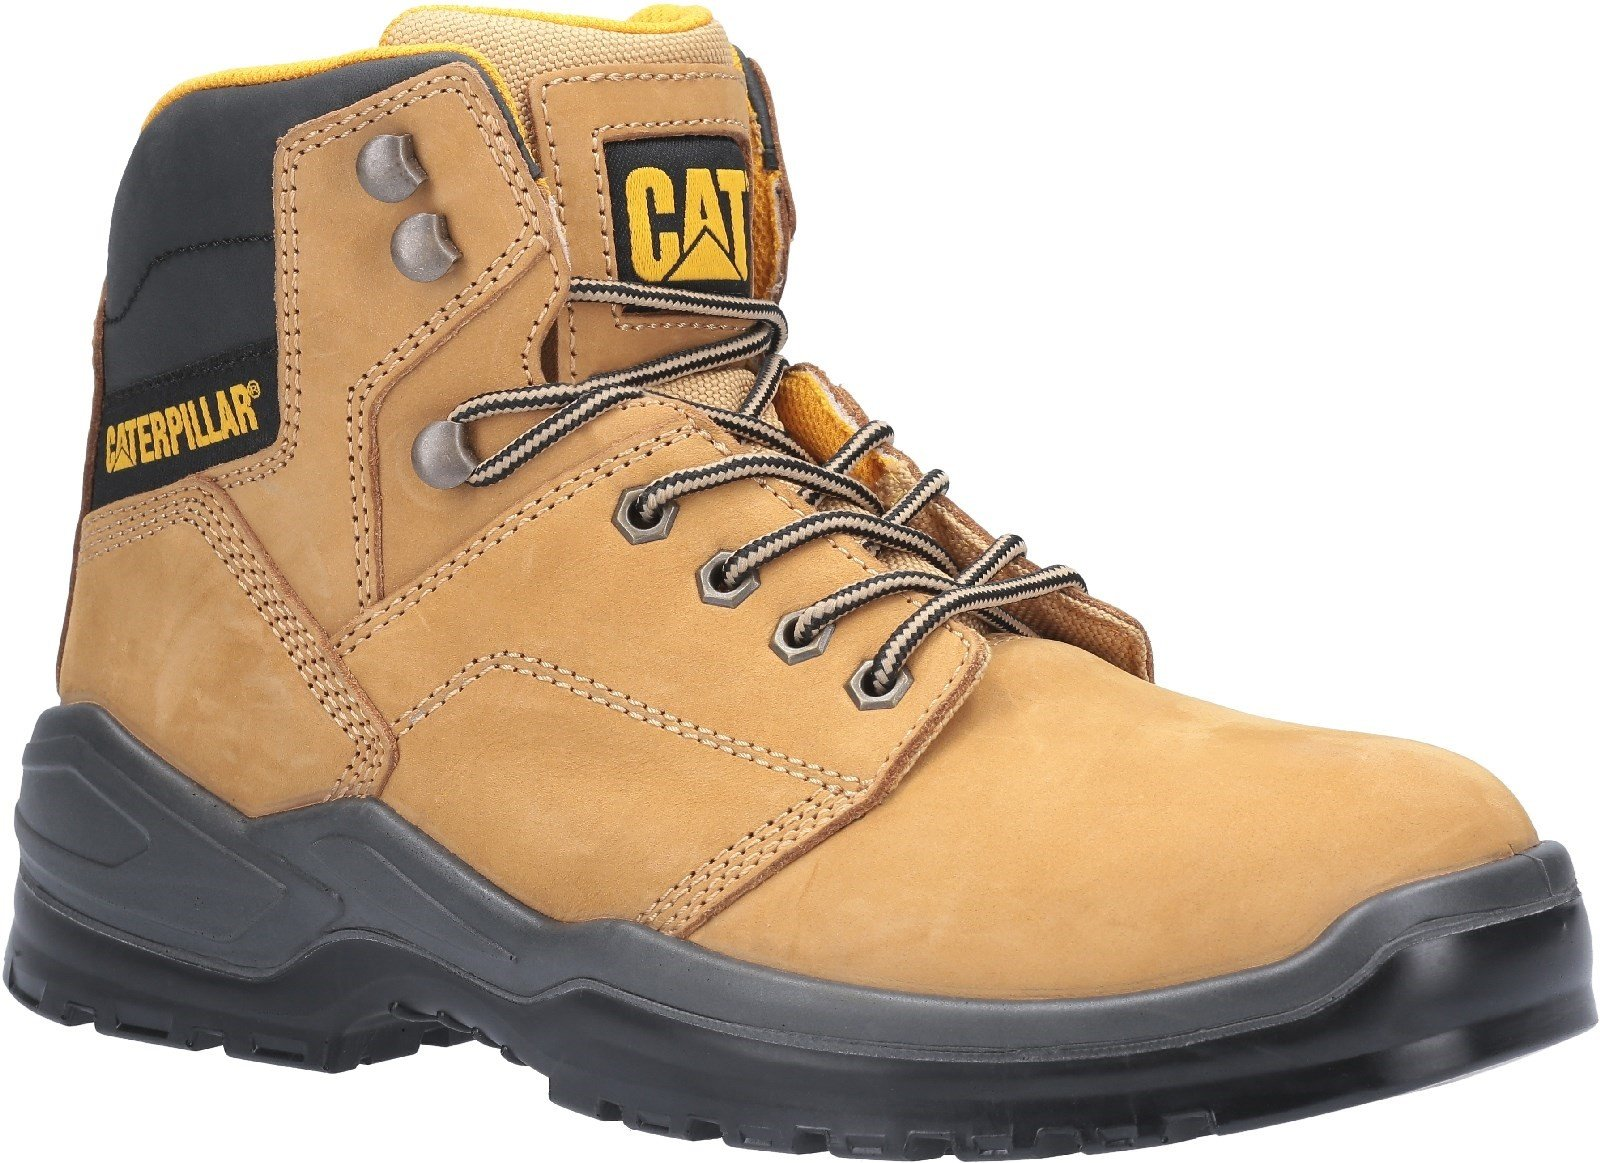 Caterpillar Men's Striver Lace Up Injected Safety Boot Honey 30703 - Honey 6